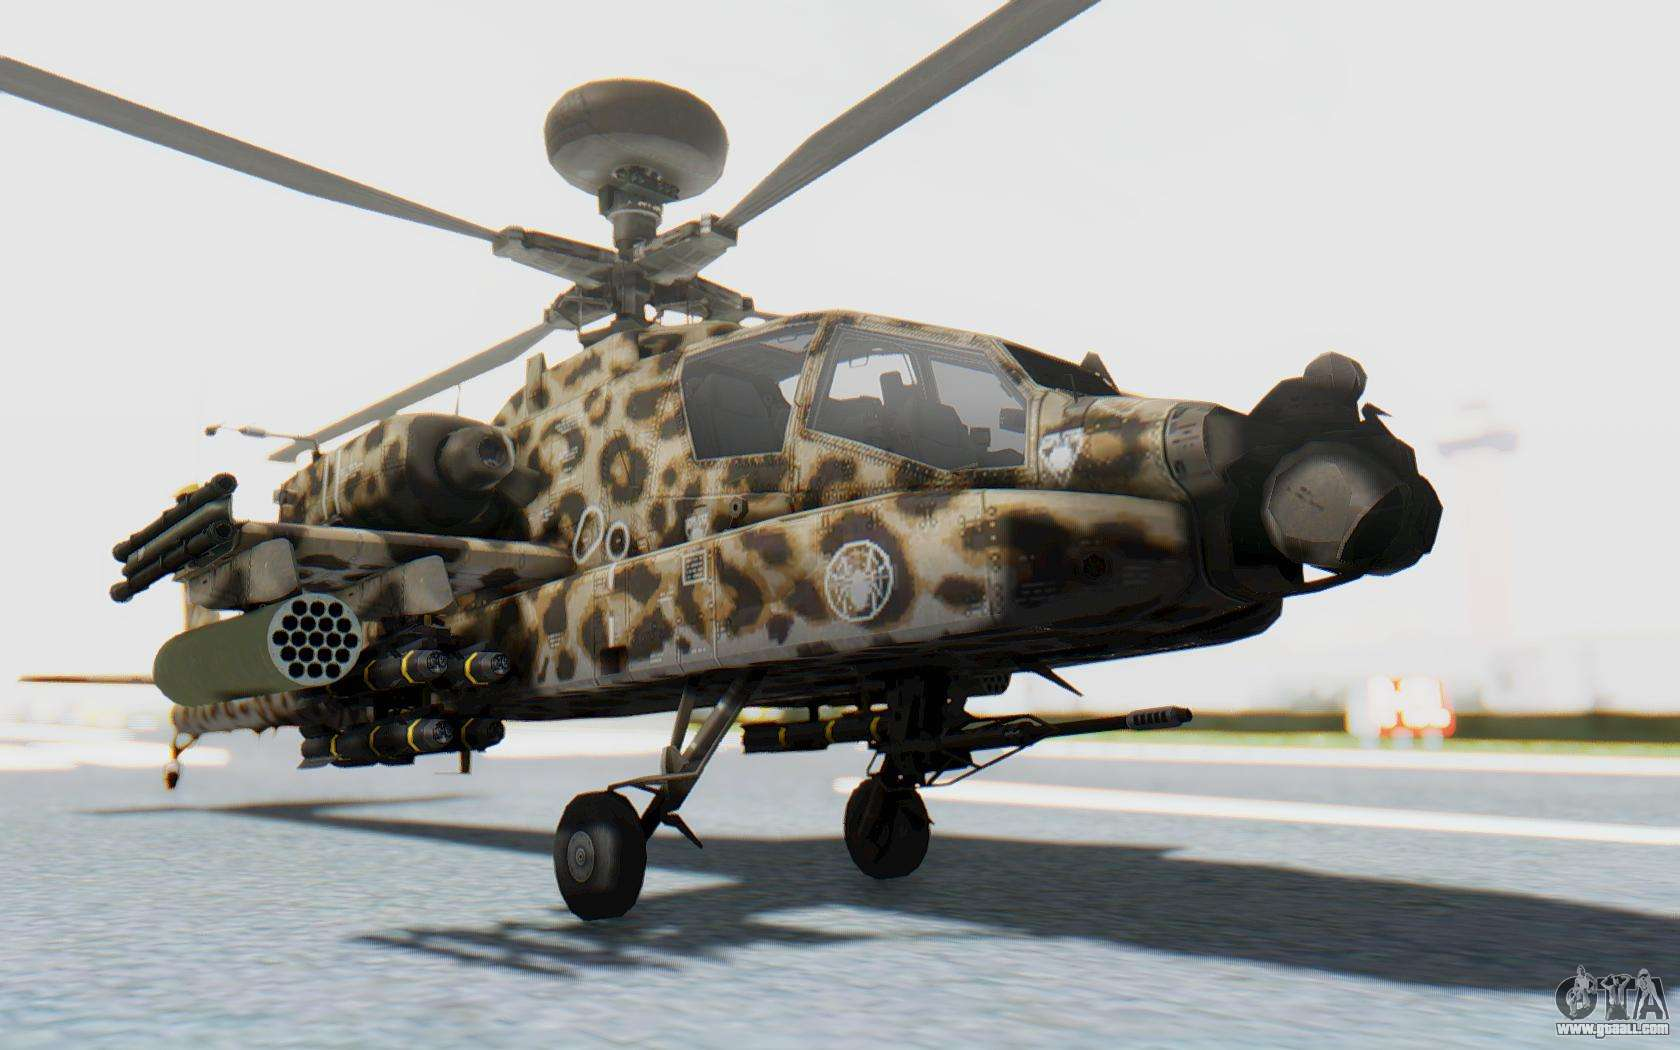 reconnaissance helicopter with 79795 Ah 64 Apache Leopard on SF 226 Bloodhound 226680317 as well Boeing Sikorsky Rah 66  anche in addition 27041 Vertolet Bell Uh 1y Venom in addition russianhelicopters moreover As 90 Artillery Uk.